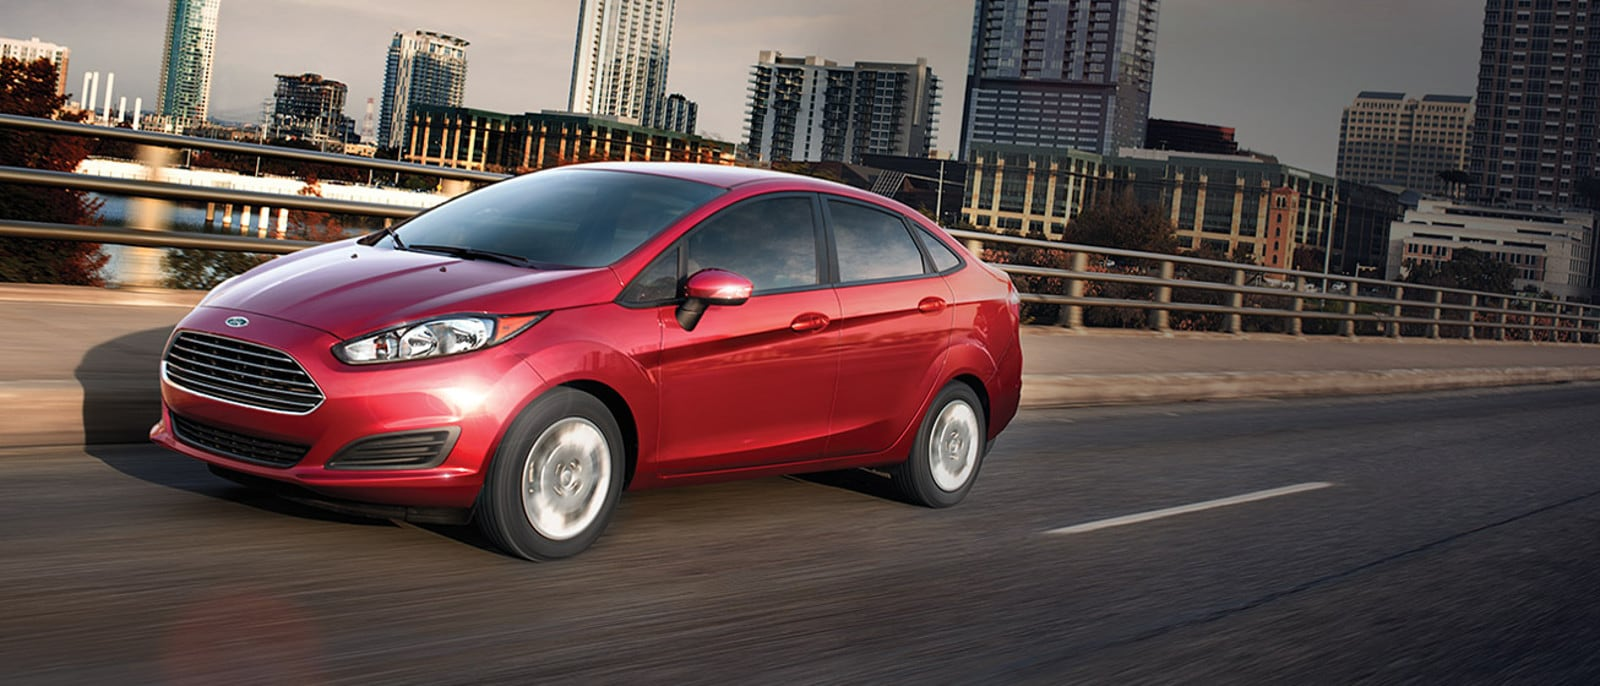 2016 Ford Fiesta on road